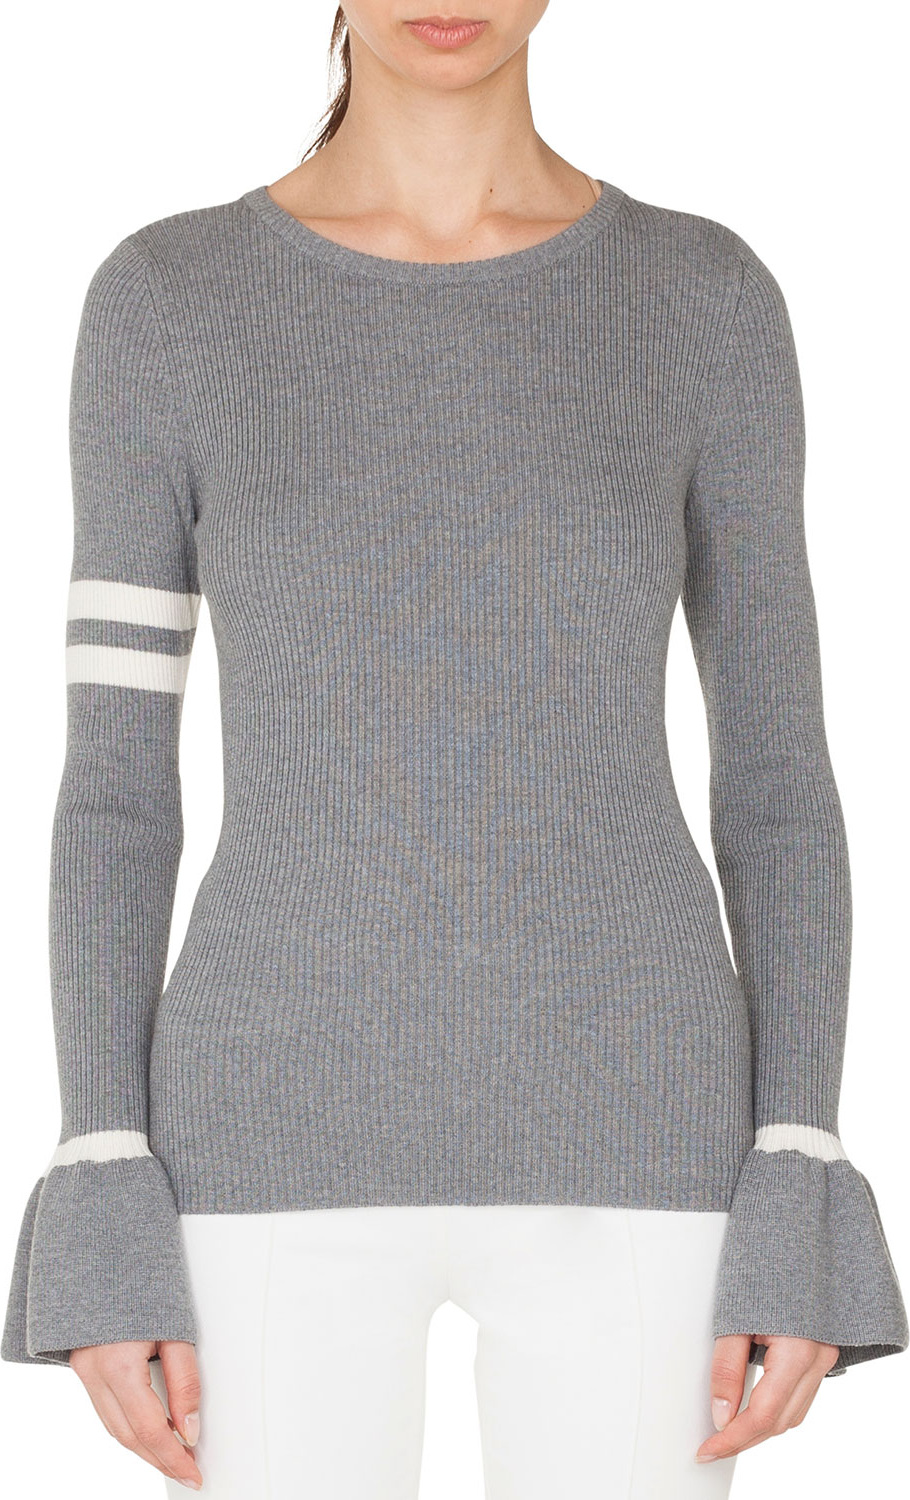 Akris Punto - Crewneck Striped Long-Sleeve Wool Knit Pullover Sweater